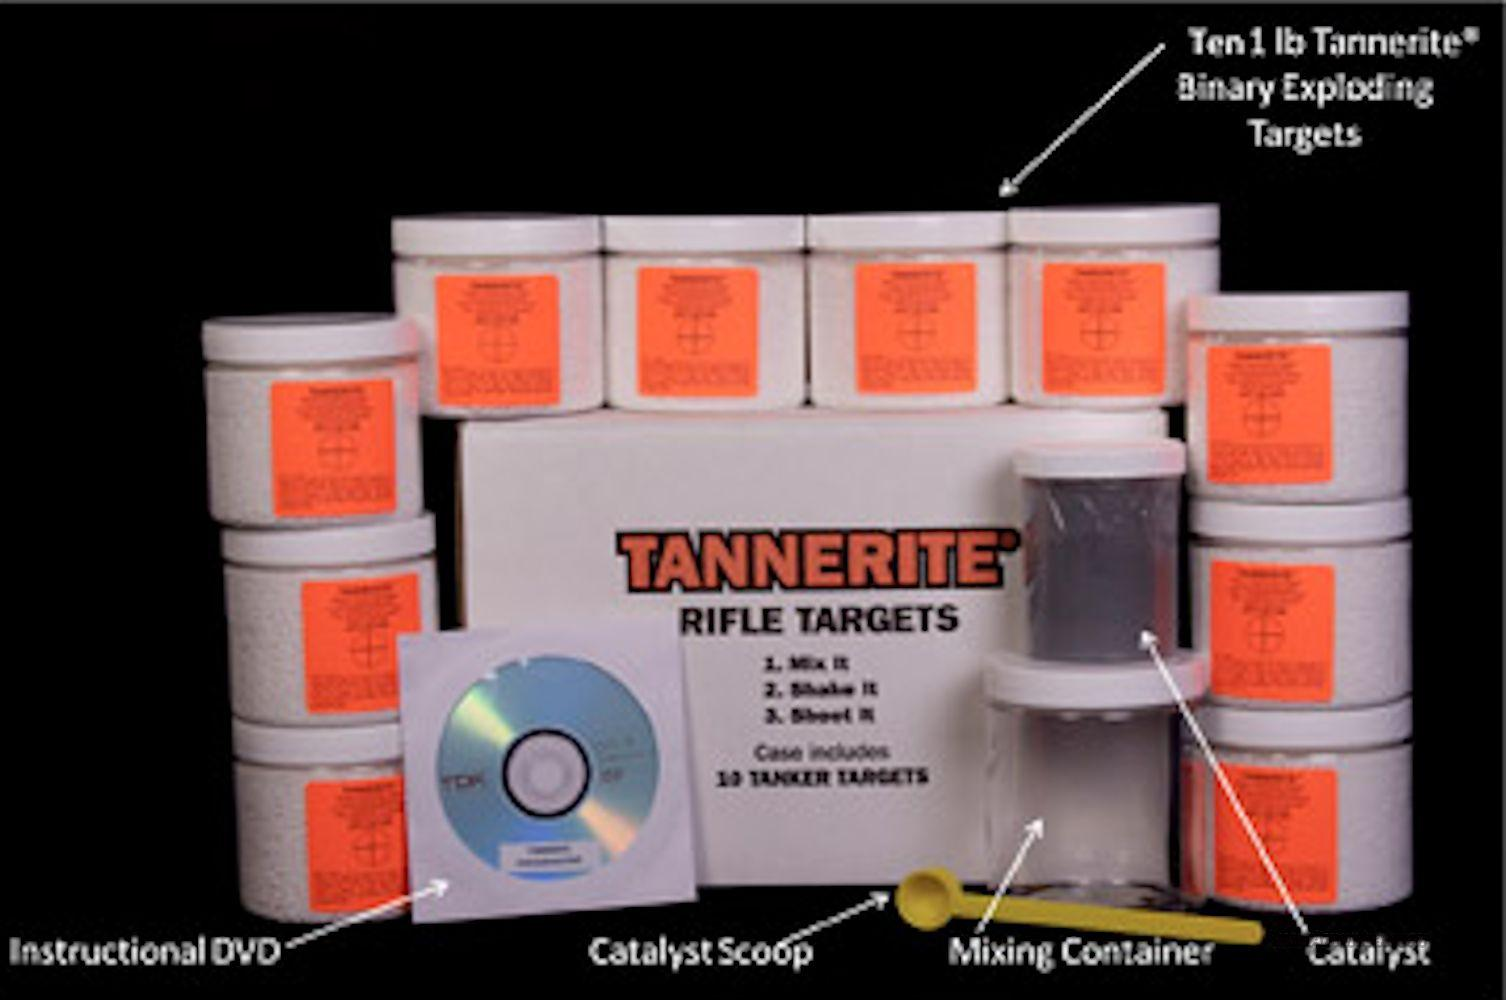 Tannerite 10 X 1# Exploding Binary Targets Pro Pak PP10  Non-Guns > Targets > Target Systems